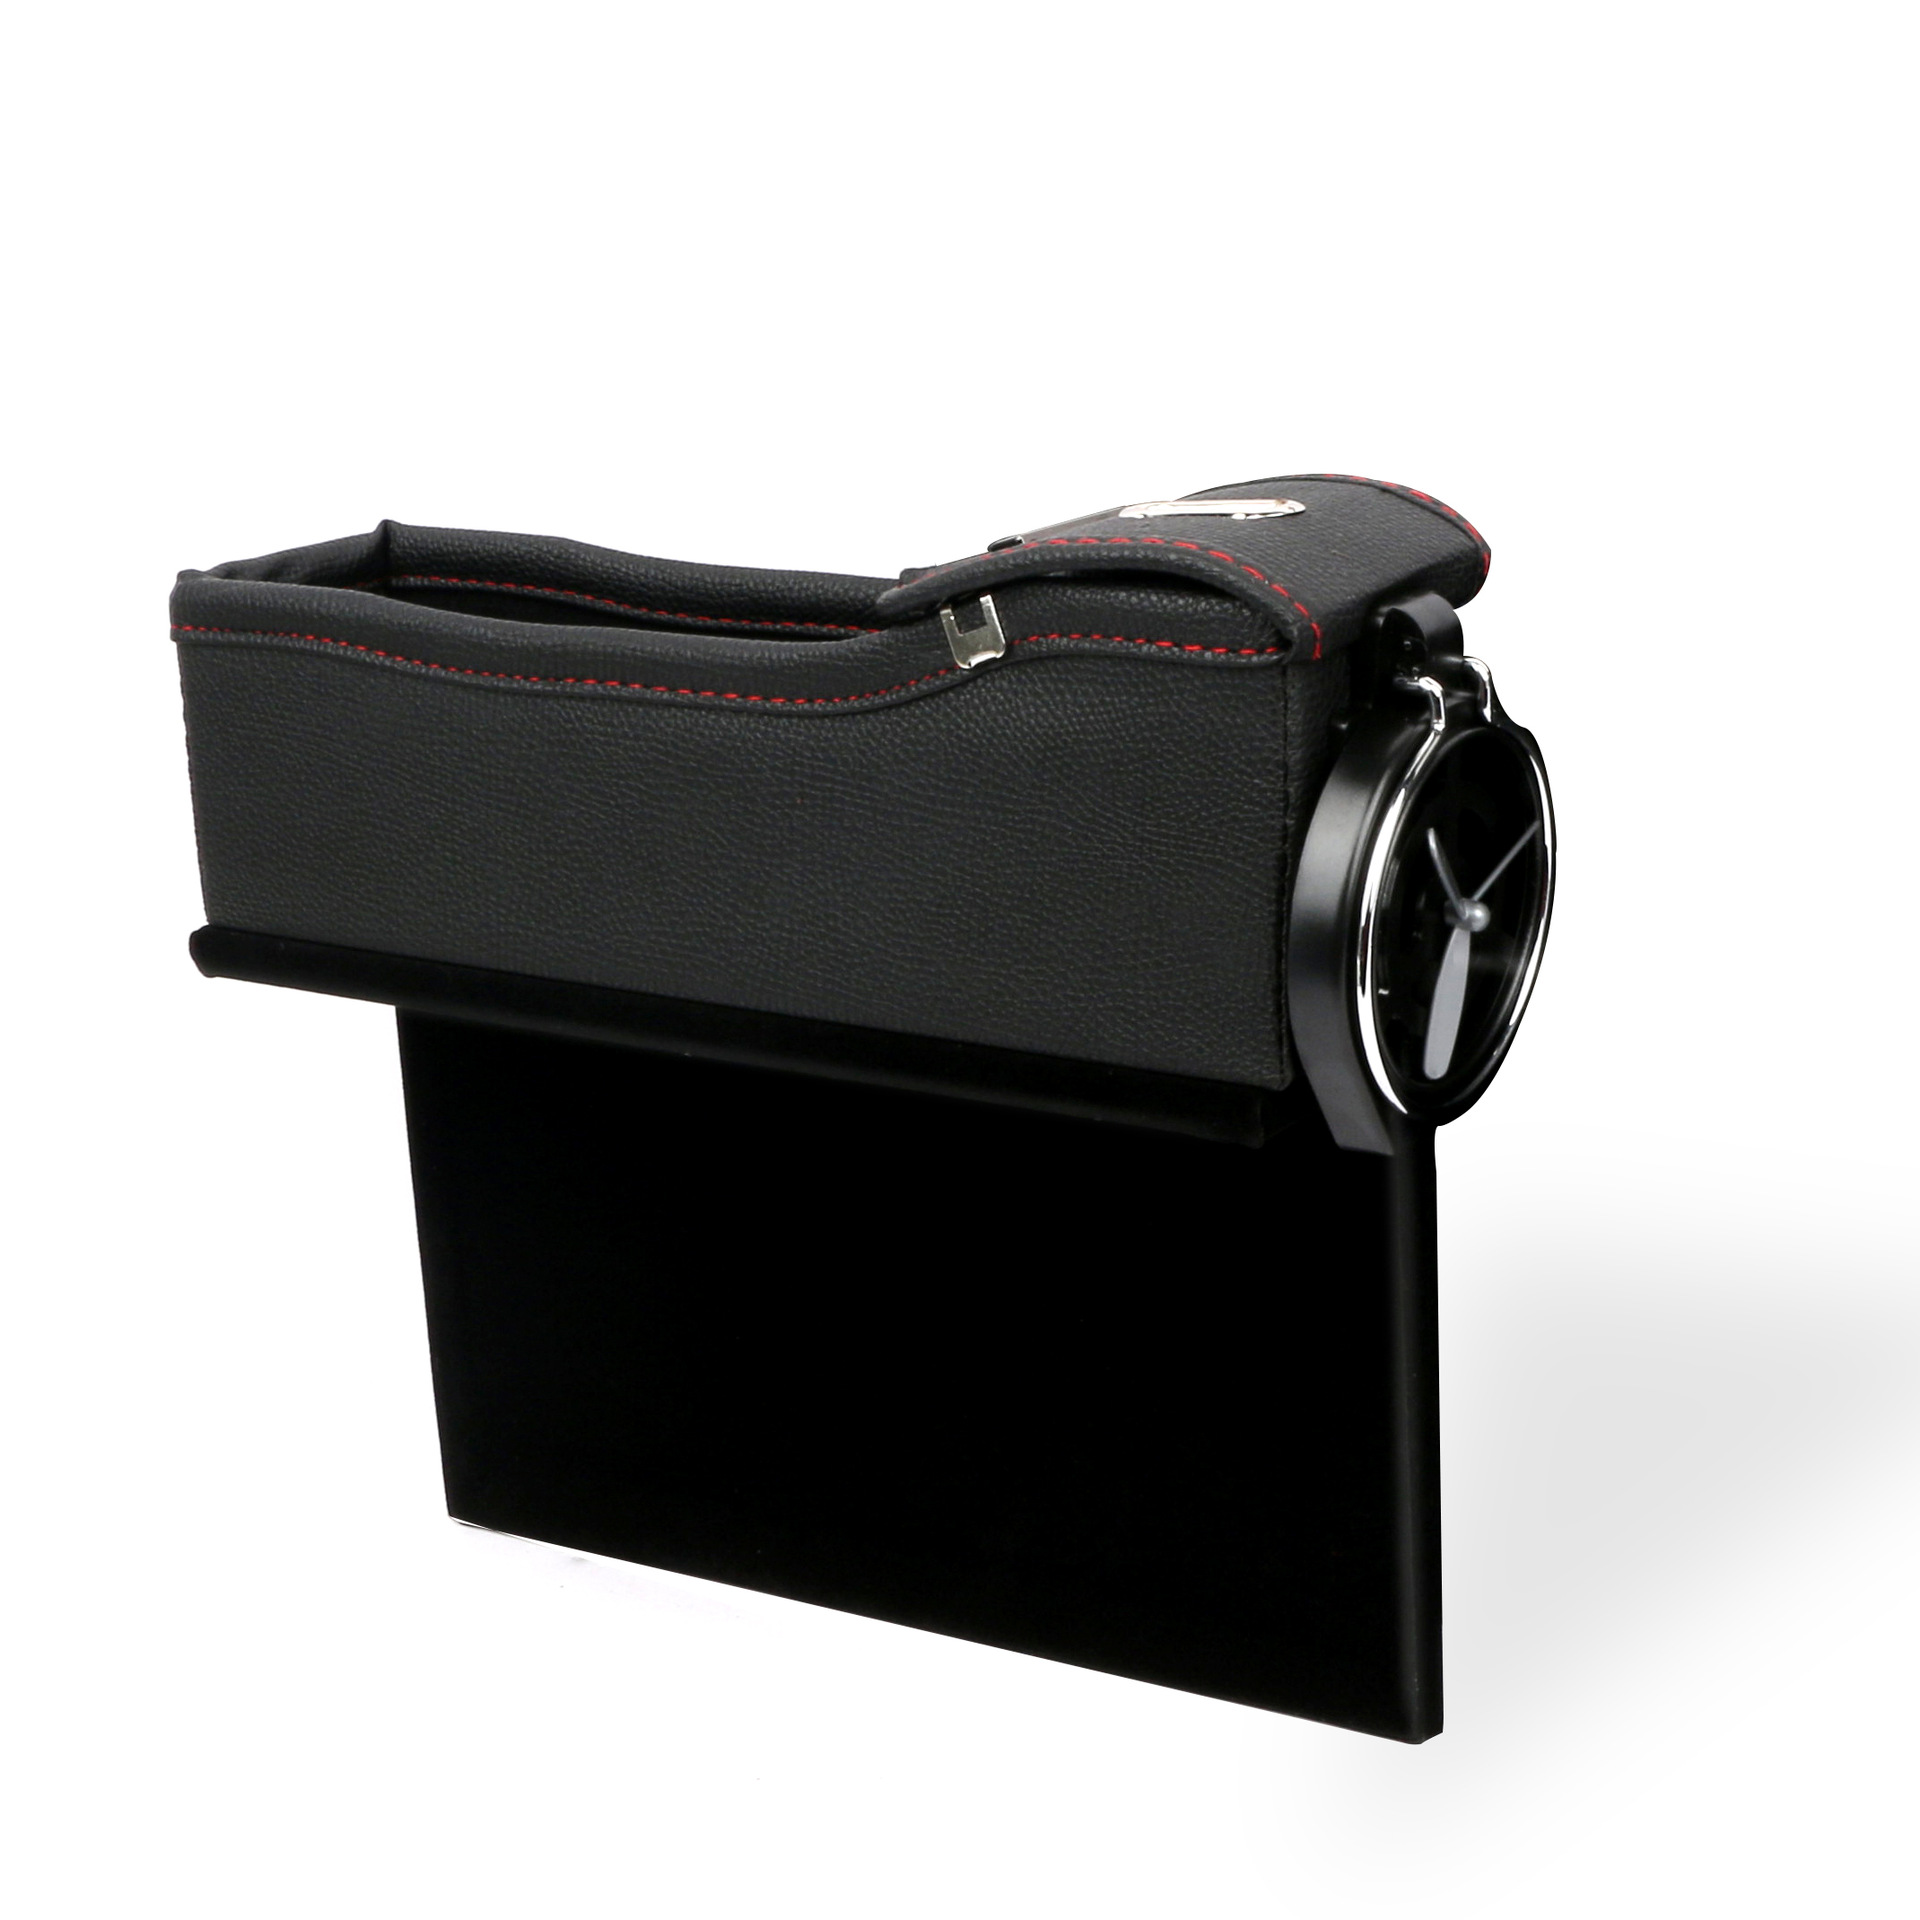 Car Seat Storage Box Cup Drink Holder Organizer Auto Gap Pocket Stowing Tidying for Phone Pad Card Coin  Black red line Deputy driving